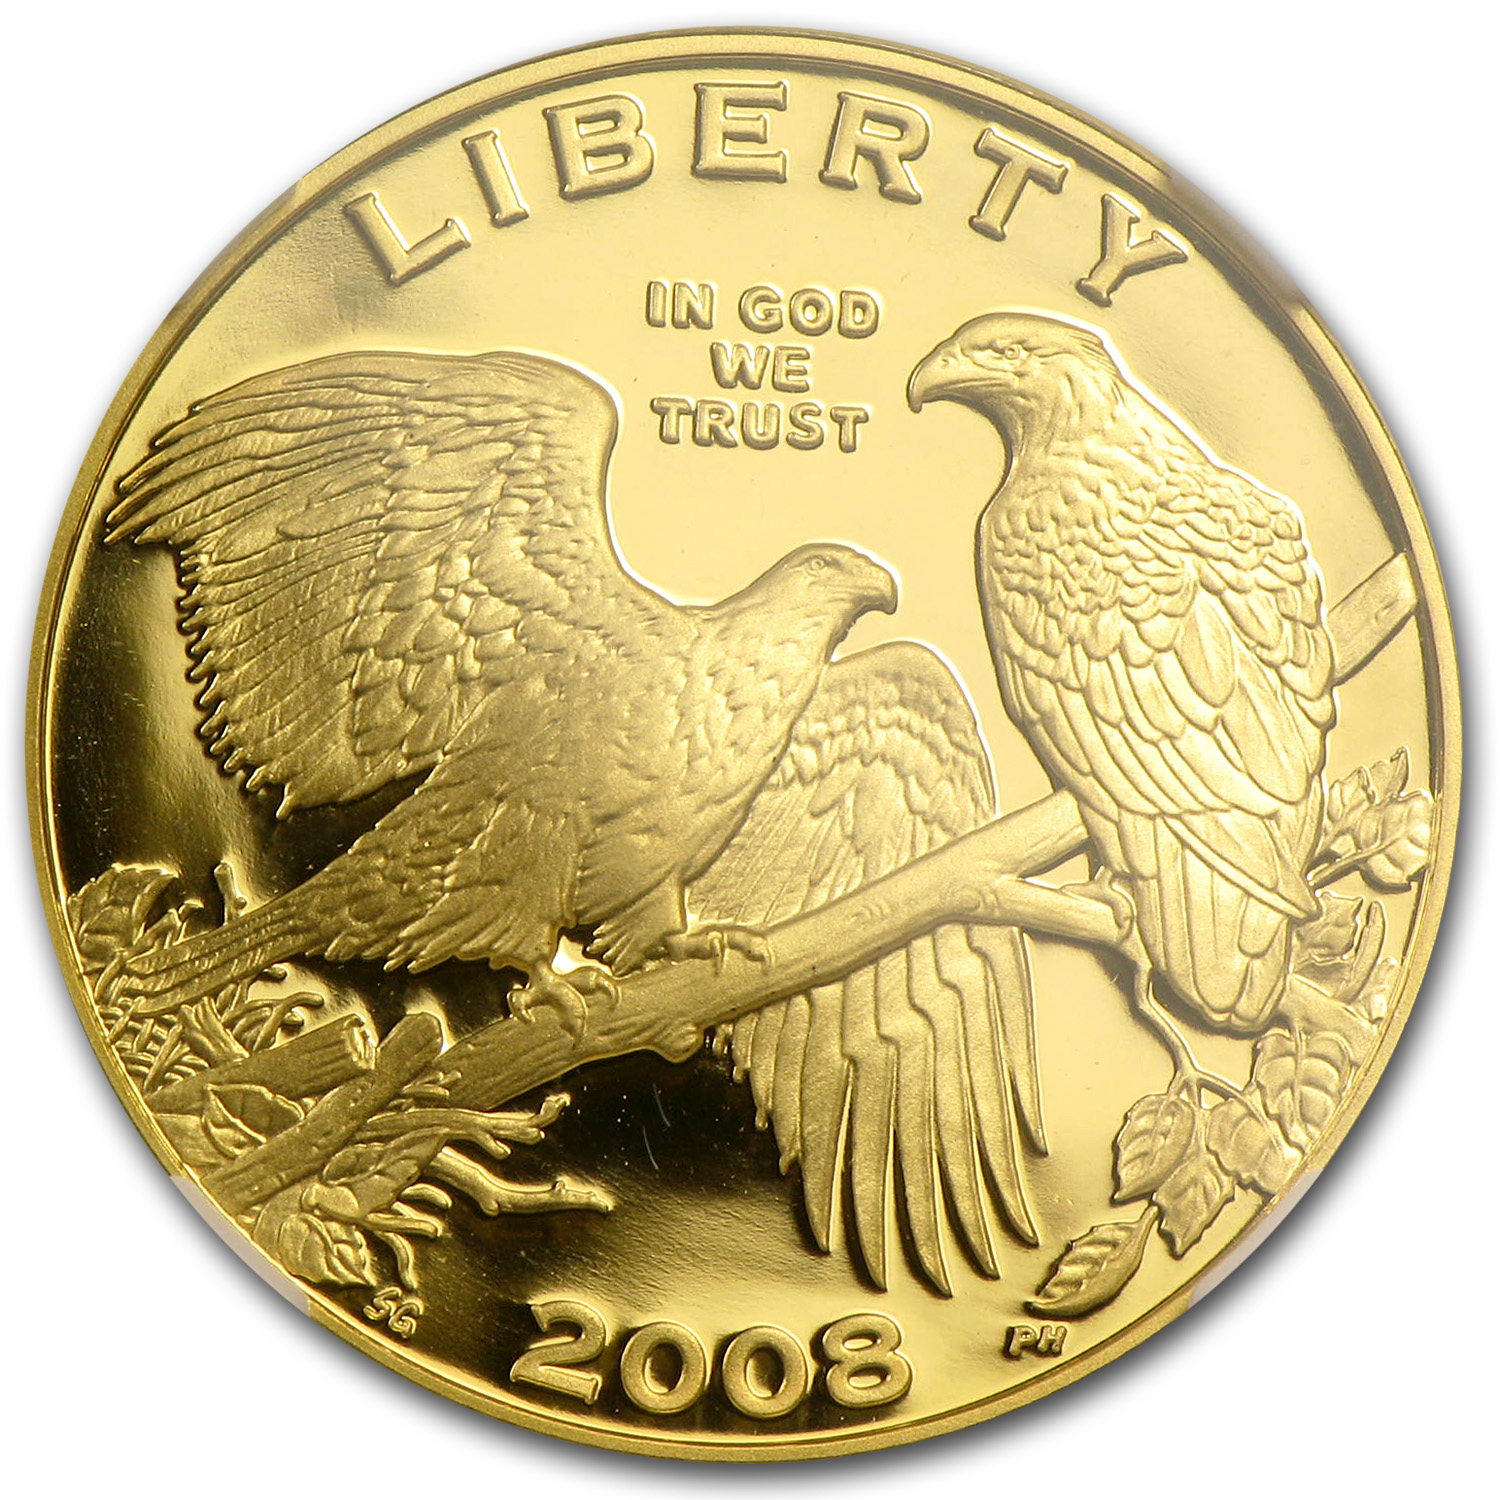 2008-W Bald Eagle - $5 Gold Commemorative - PF-70 UCAM NGC